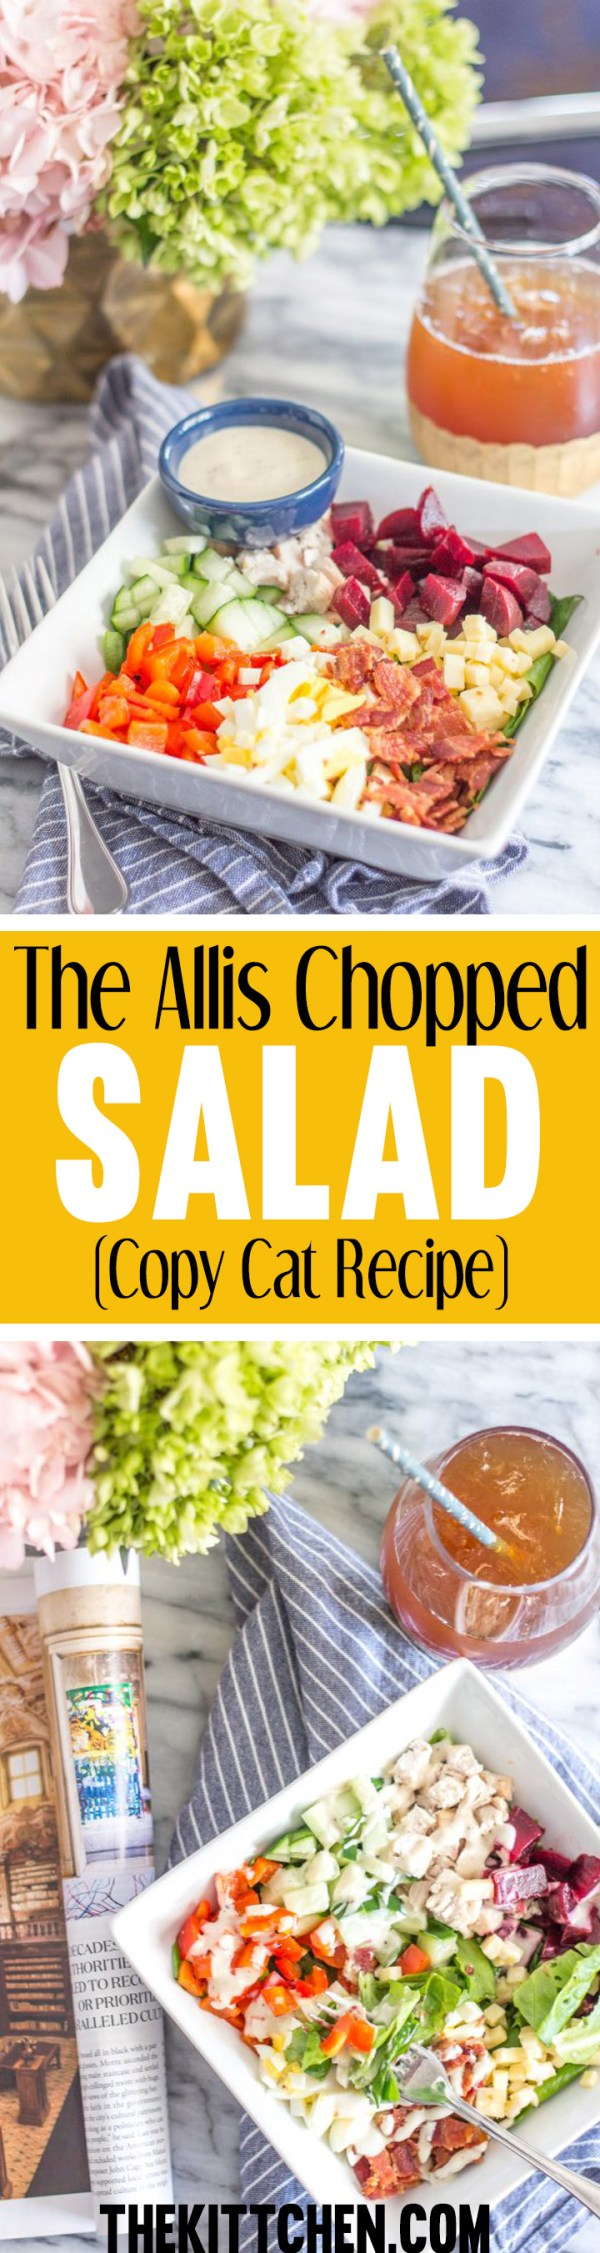 The Allis Chopped Salad is my all-time favorite salad. And since I can't have lunch at The Allis everyday, I recreated the recipe so that Icould make it at home. This salad has the perfect combination of freshly chopped vegetables and protein.